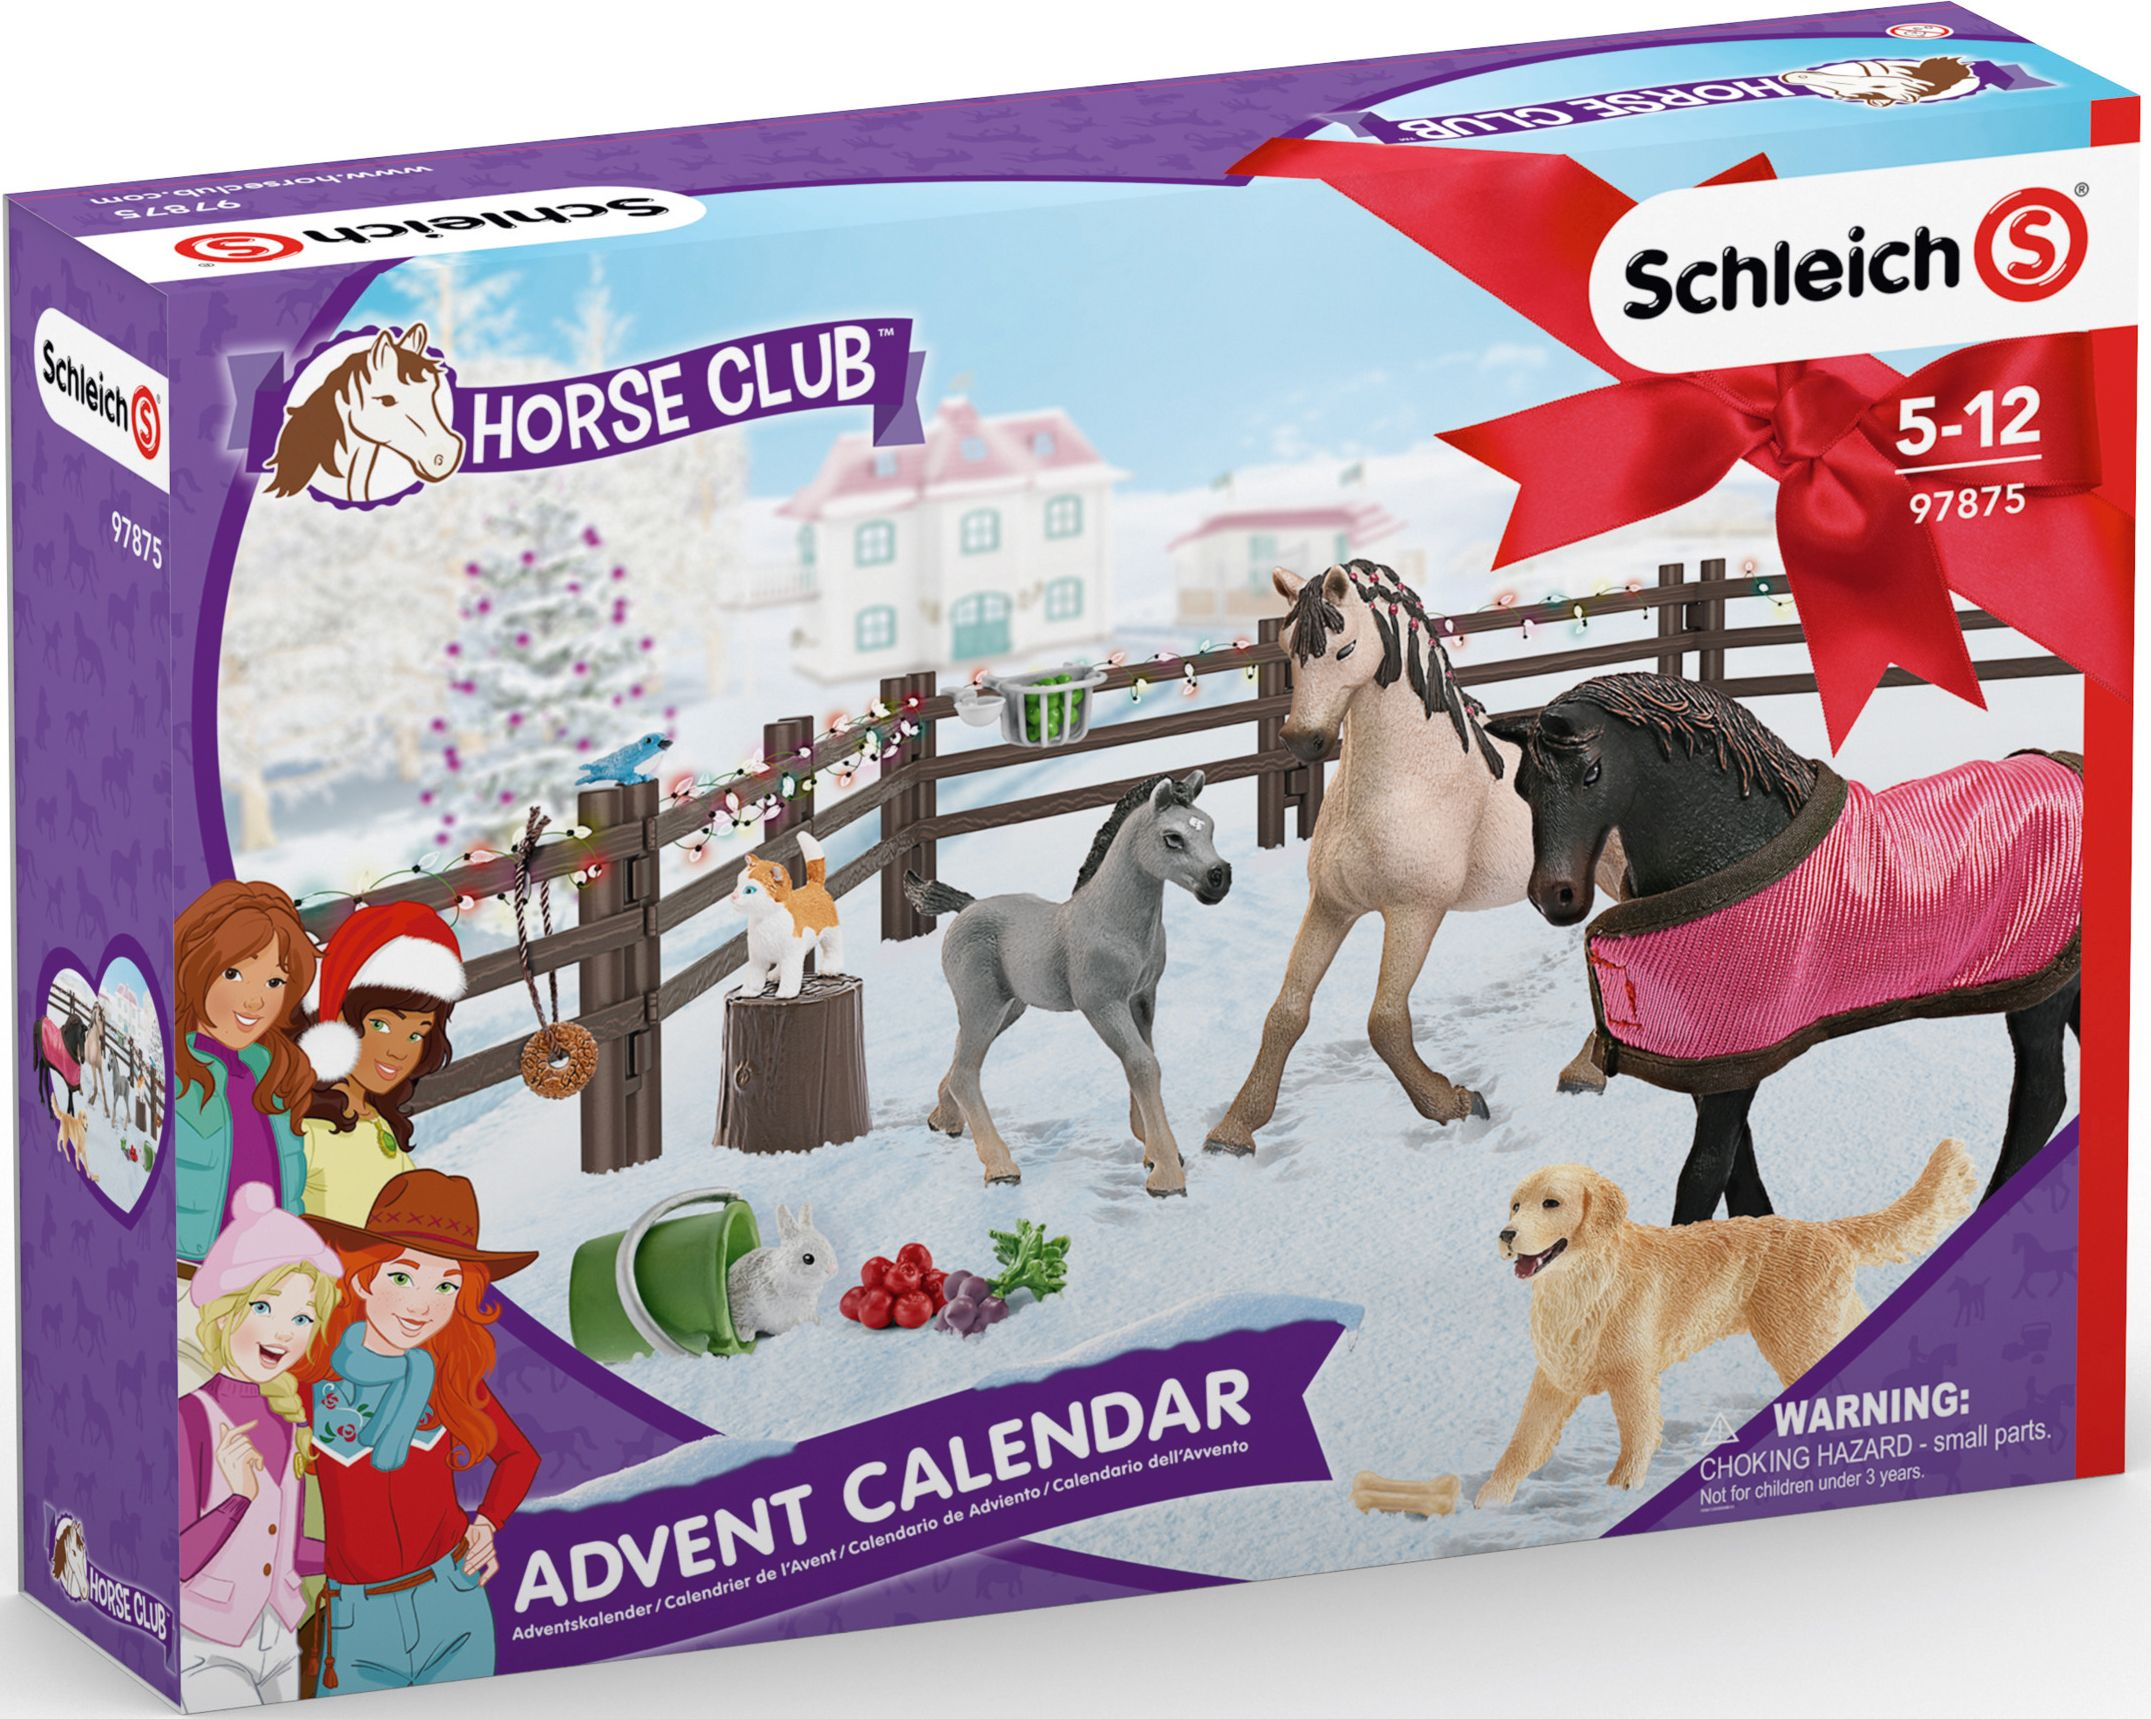 Adventskalender Horse Club Schleich 2019